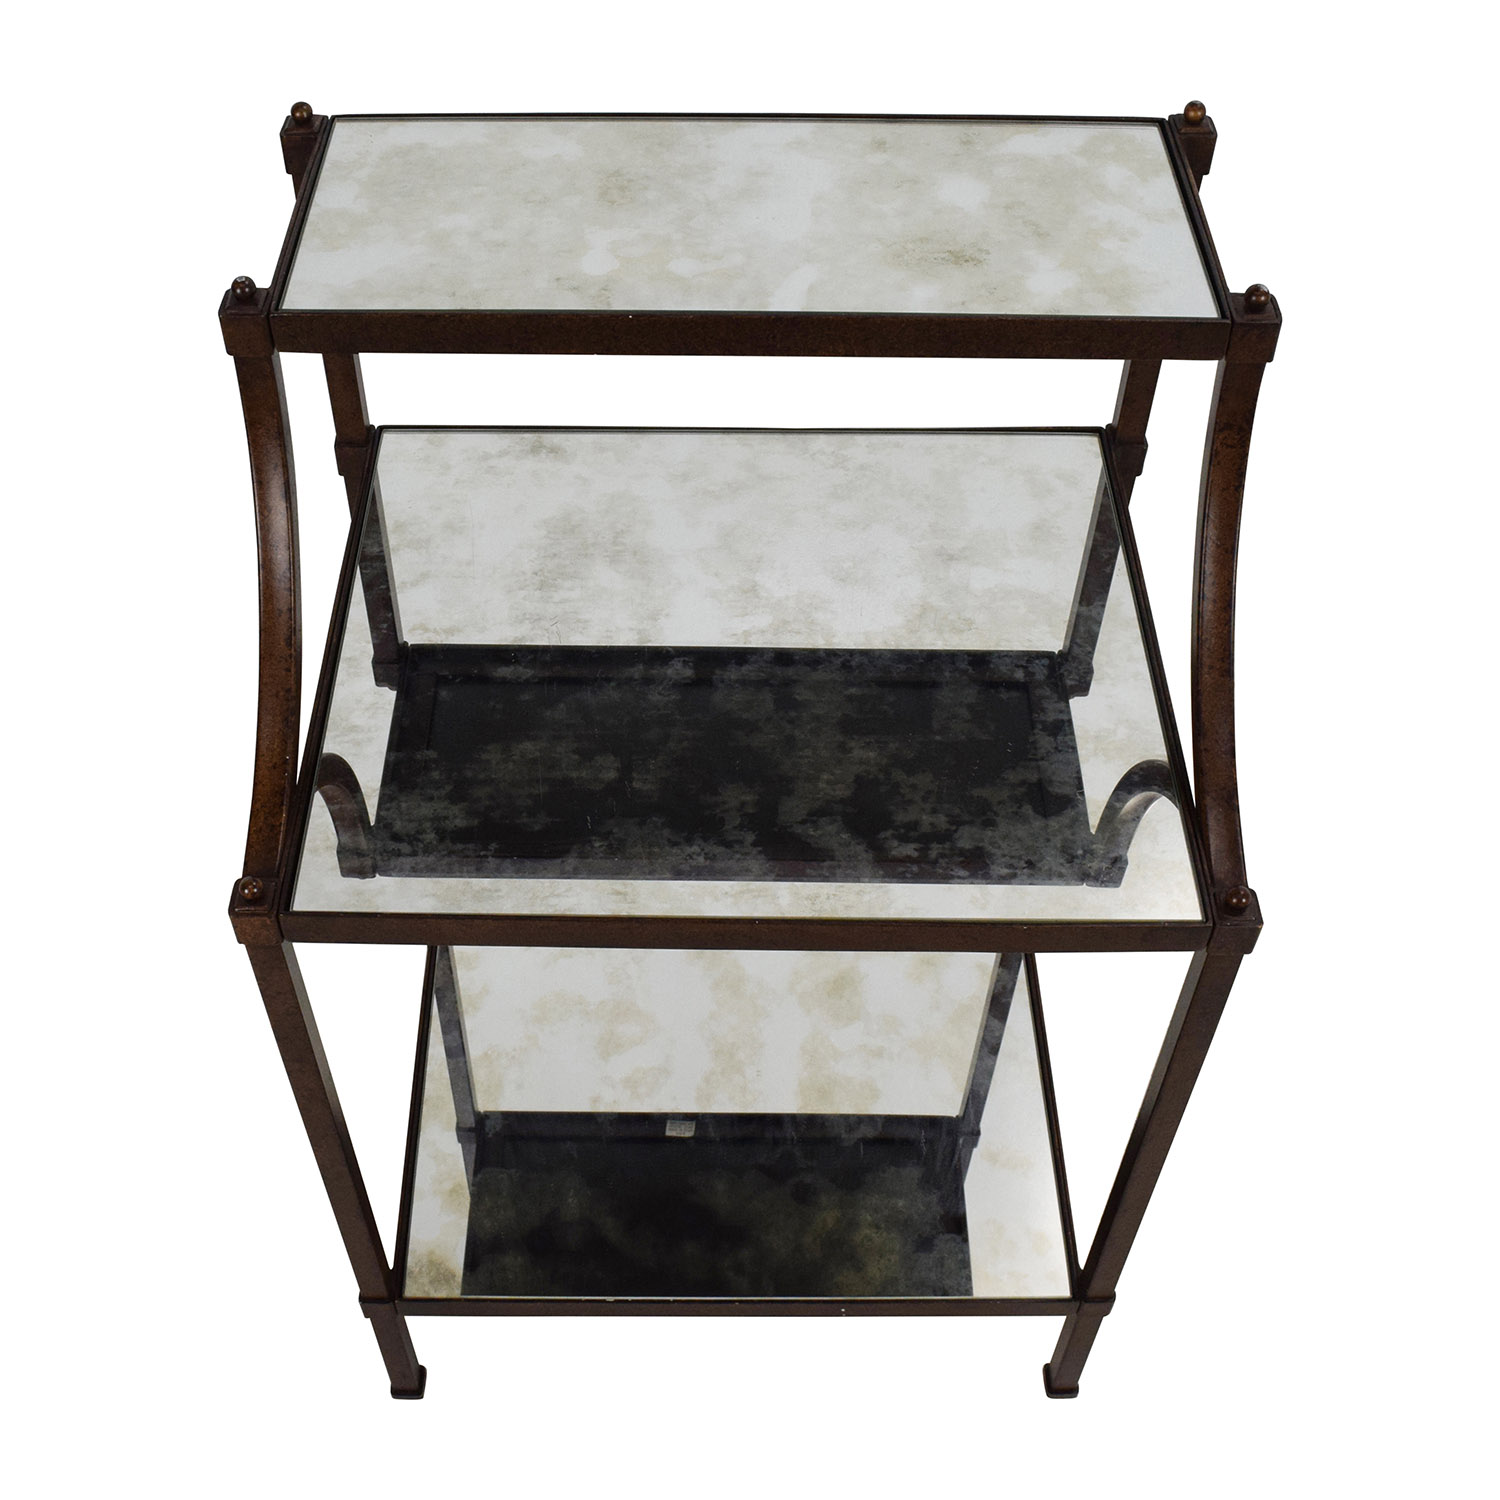 Second Hand Bedside Tables 65 Off Pottery Barn Pottery Barn Etagere Bedside Table